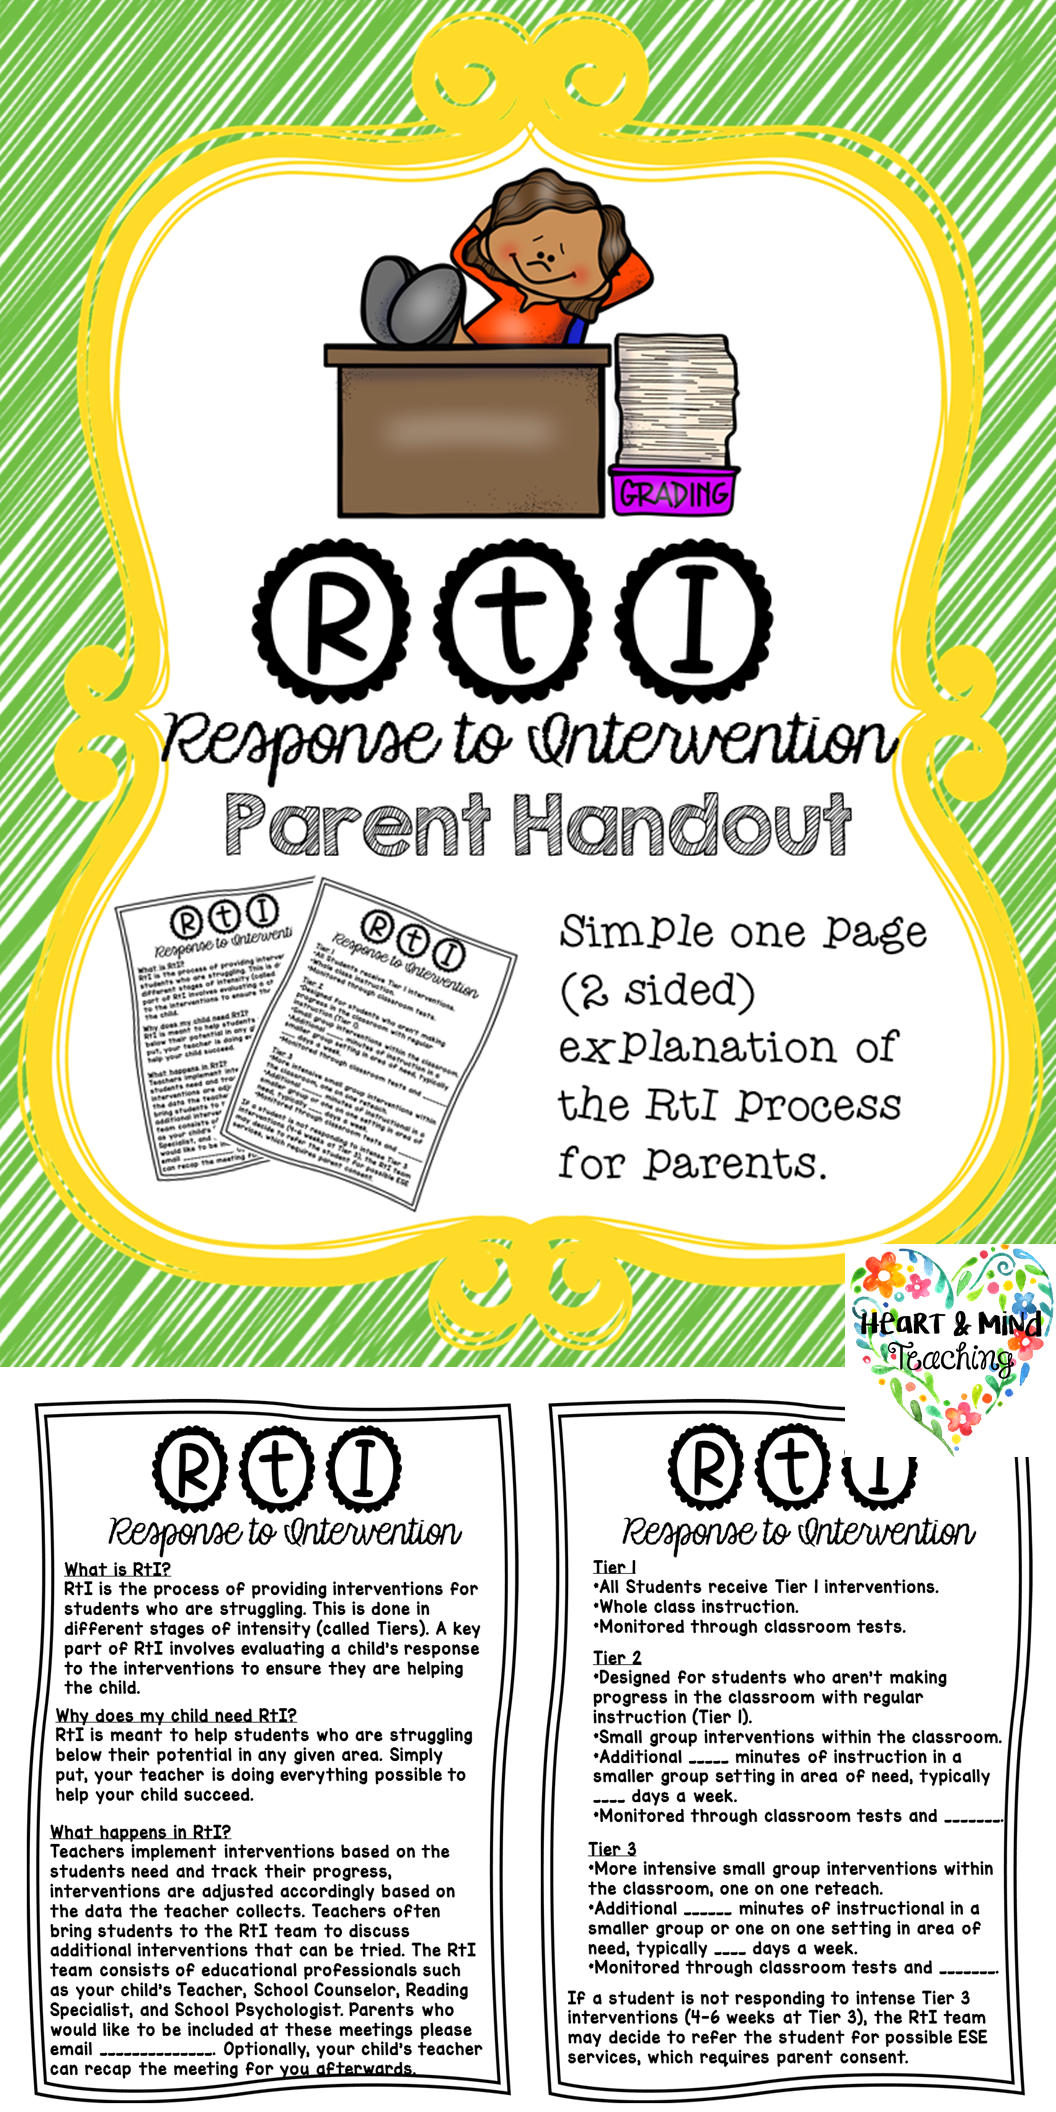 Rti Parent Explanation Handout Response To Intervention